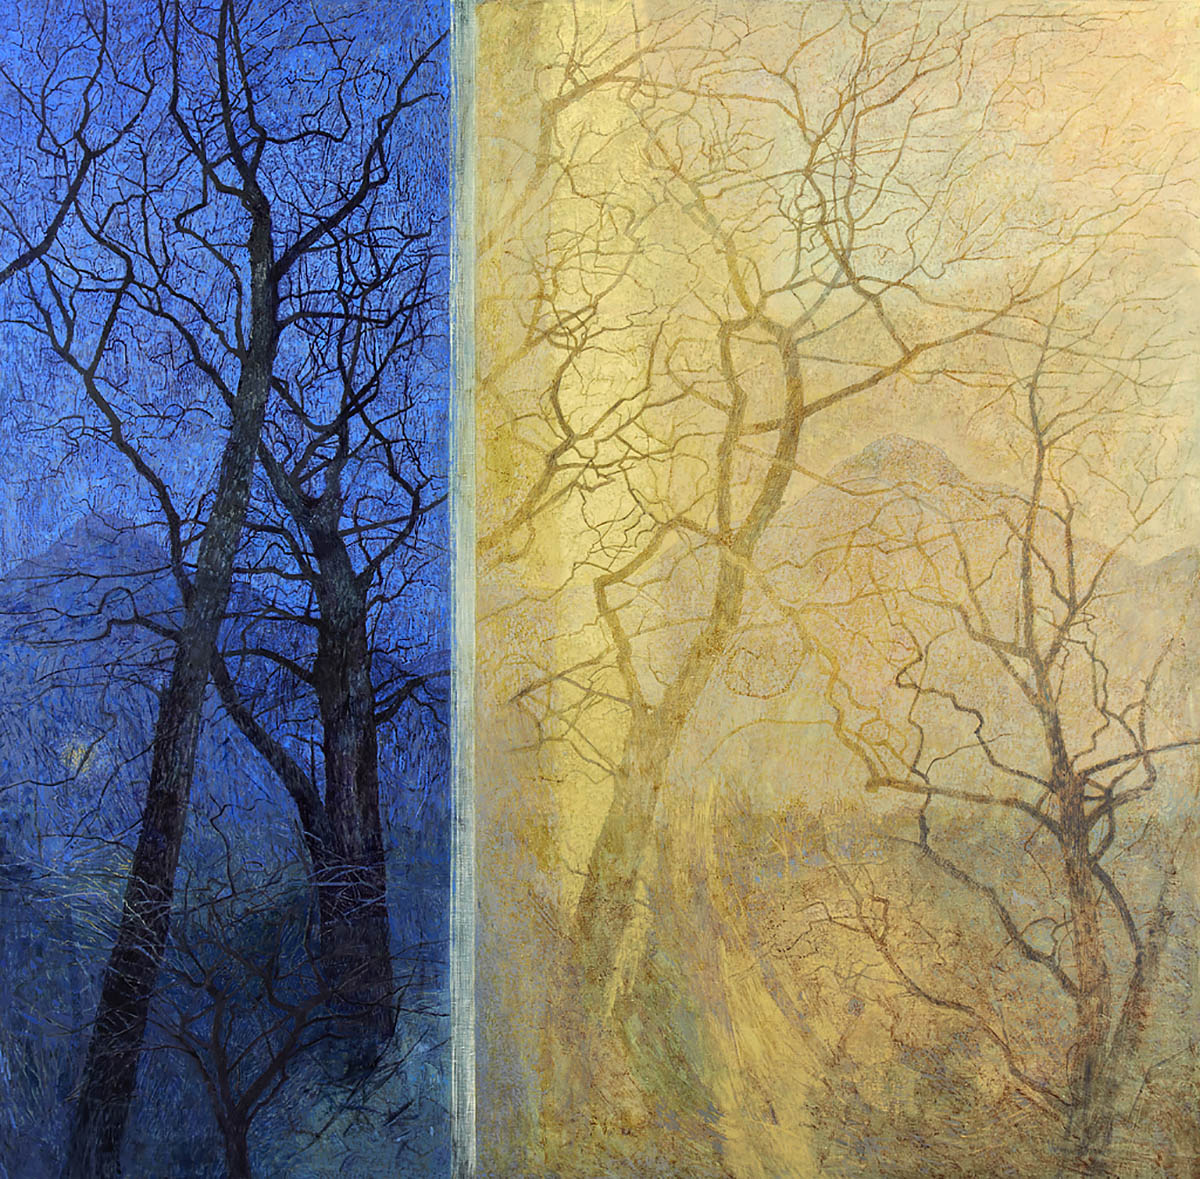 Victoria Crowe, 'From Dusk to Wakening', oil on linen